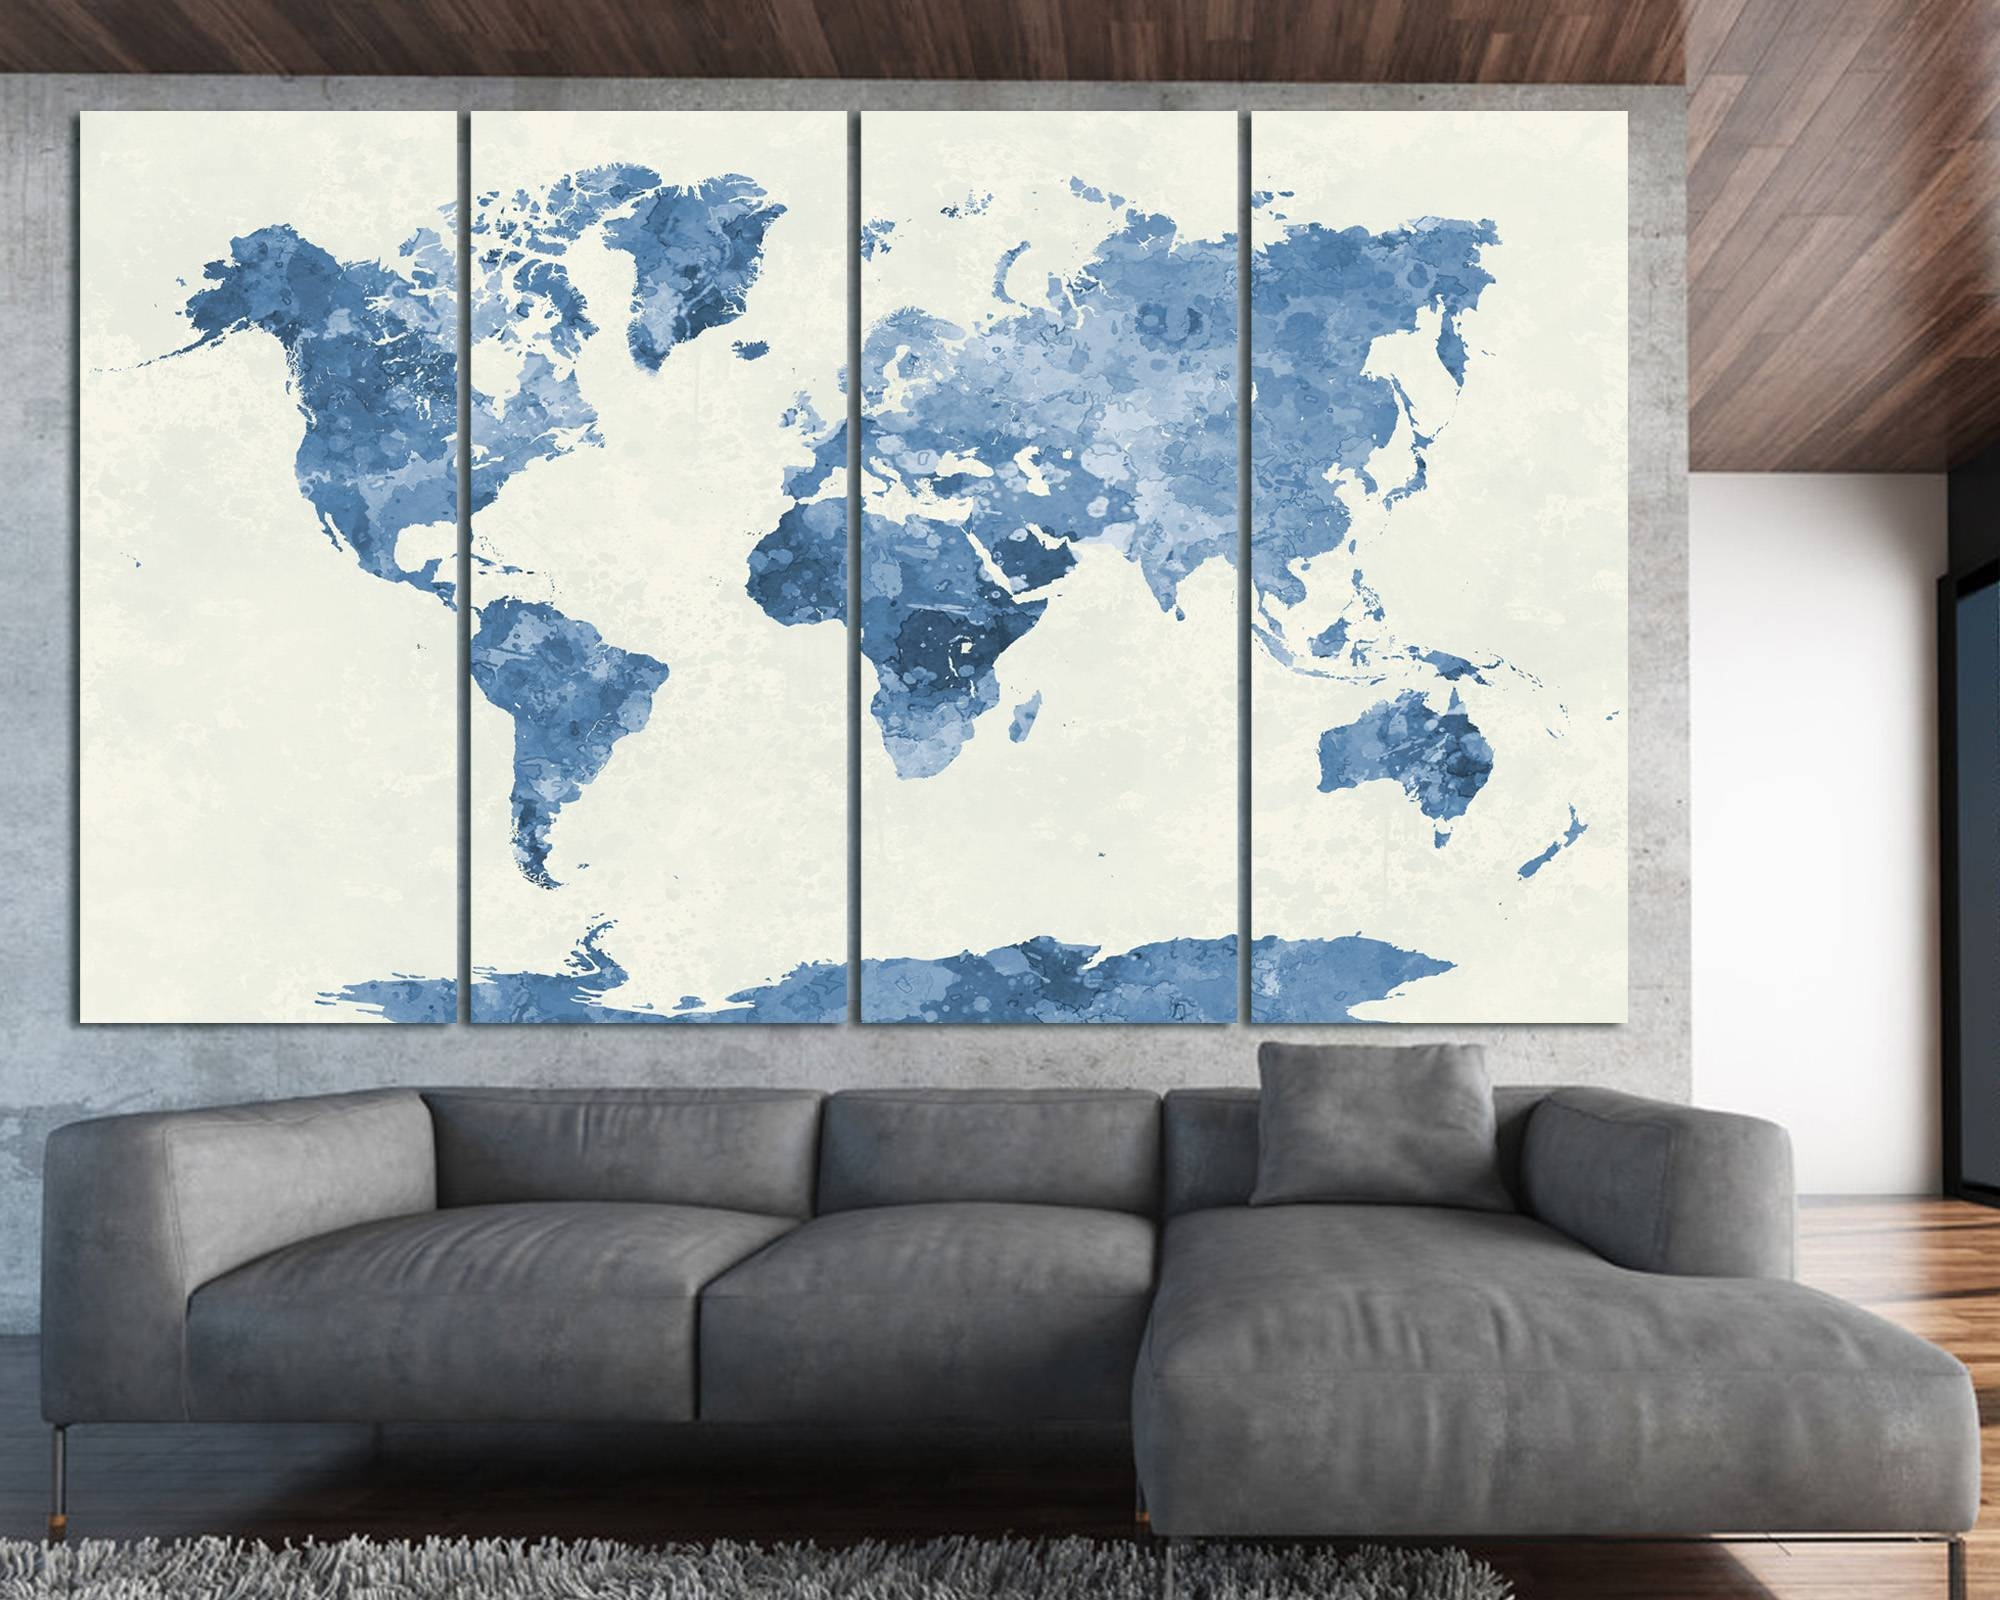 Navy Blue Watercolor World Map Print At Texelprintart Within 2018 Navy Blue Wall Art (View 6 of 20)